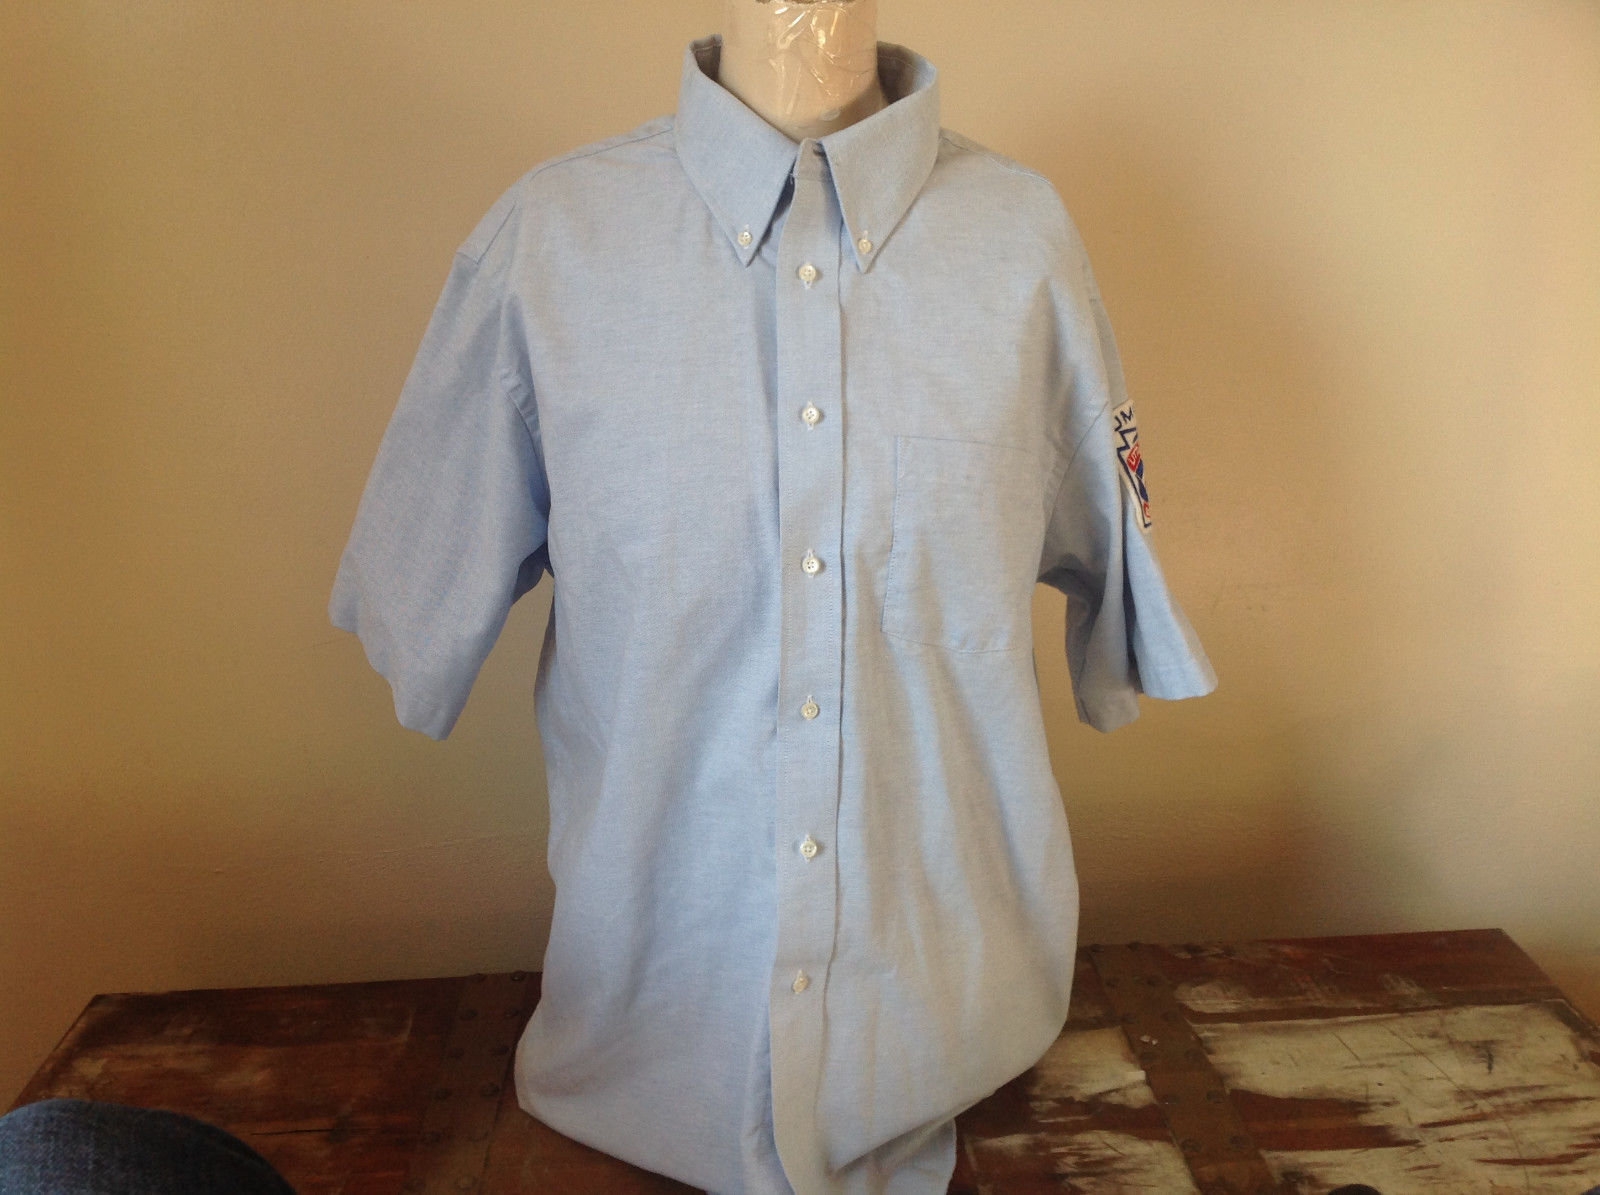 Arrow Gold Light Blue Little League Umpire Button Up Collared Shirt Size Large